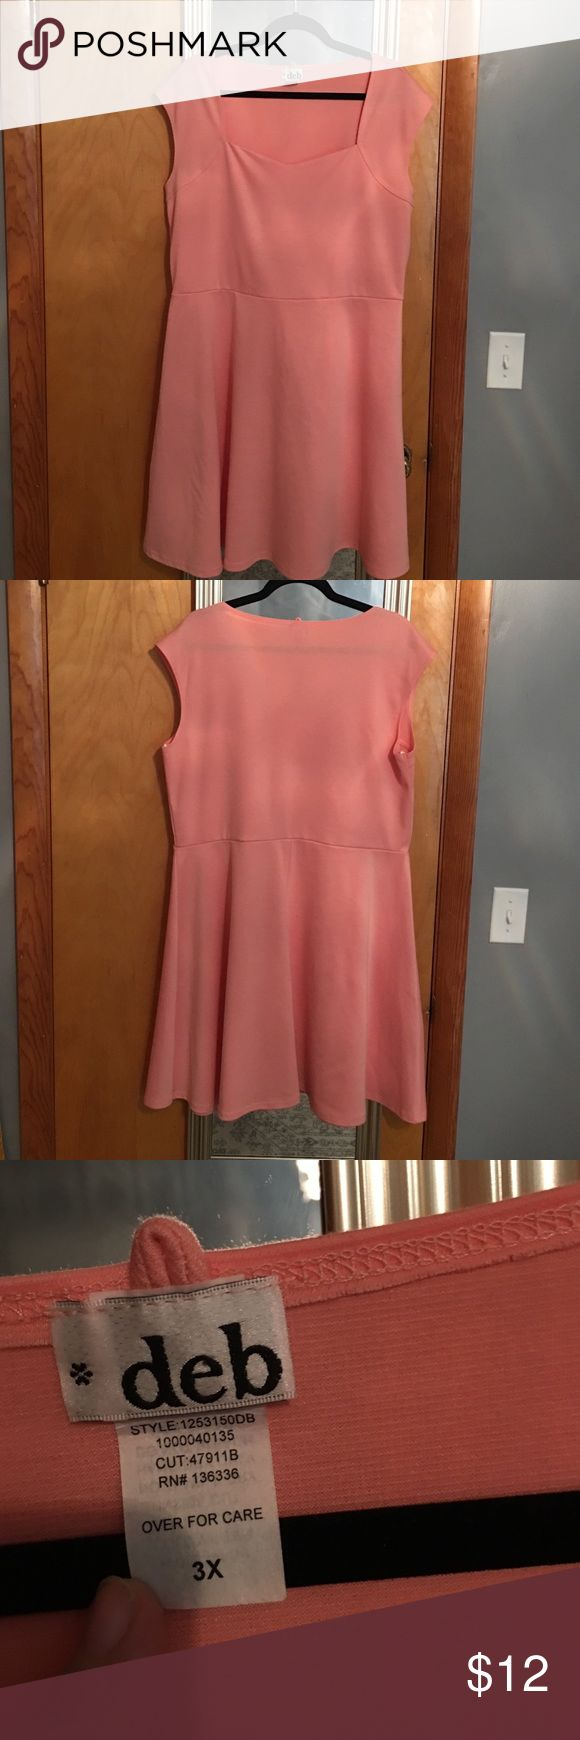 Peach colored plus size dress. Peach colored dress. Size 3x. Never worn. Came from Deb shop. Smoke free environment. Deb Dresses